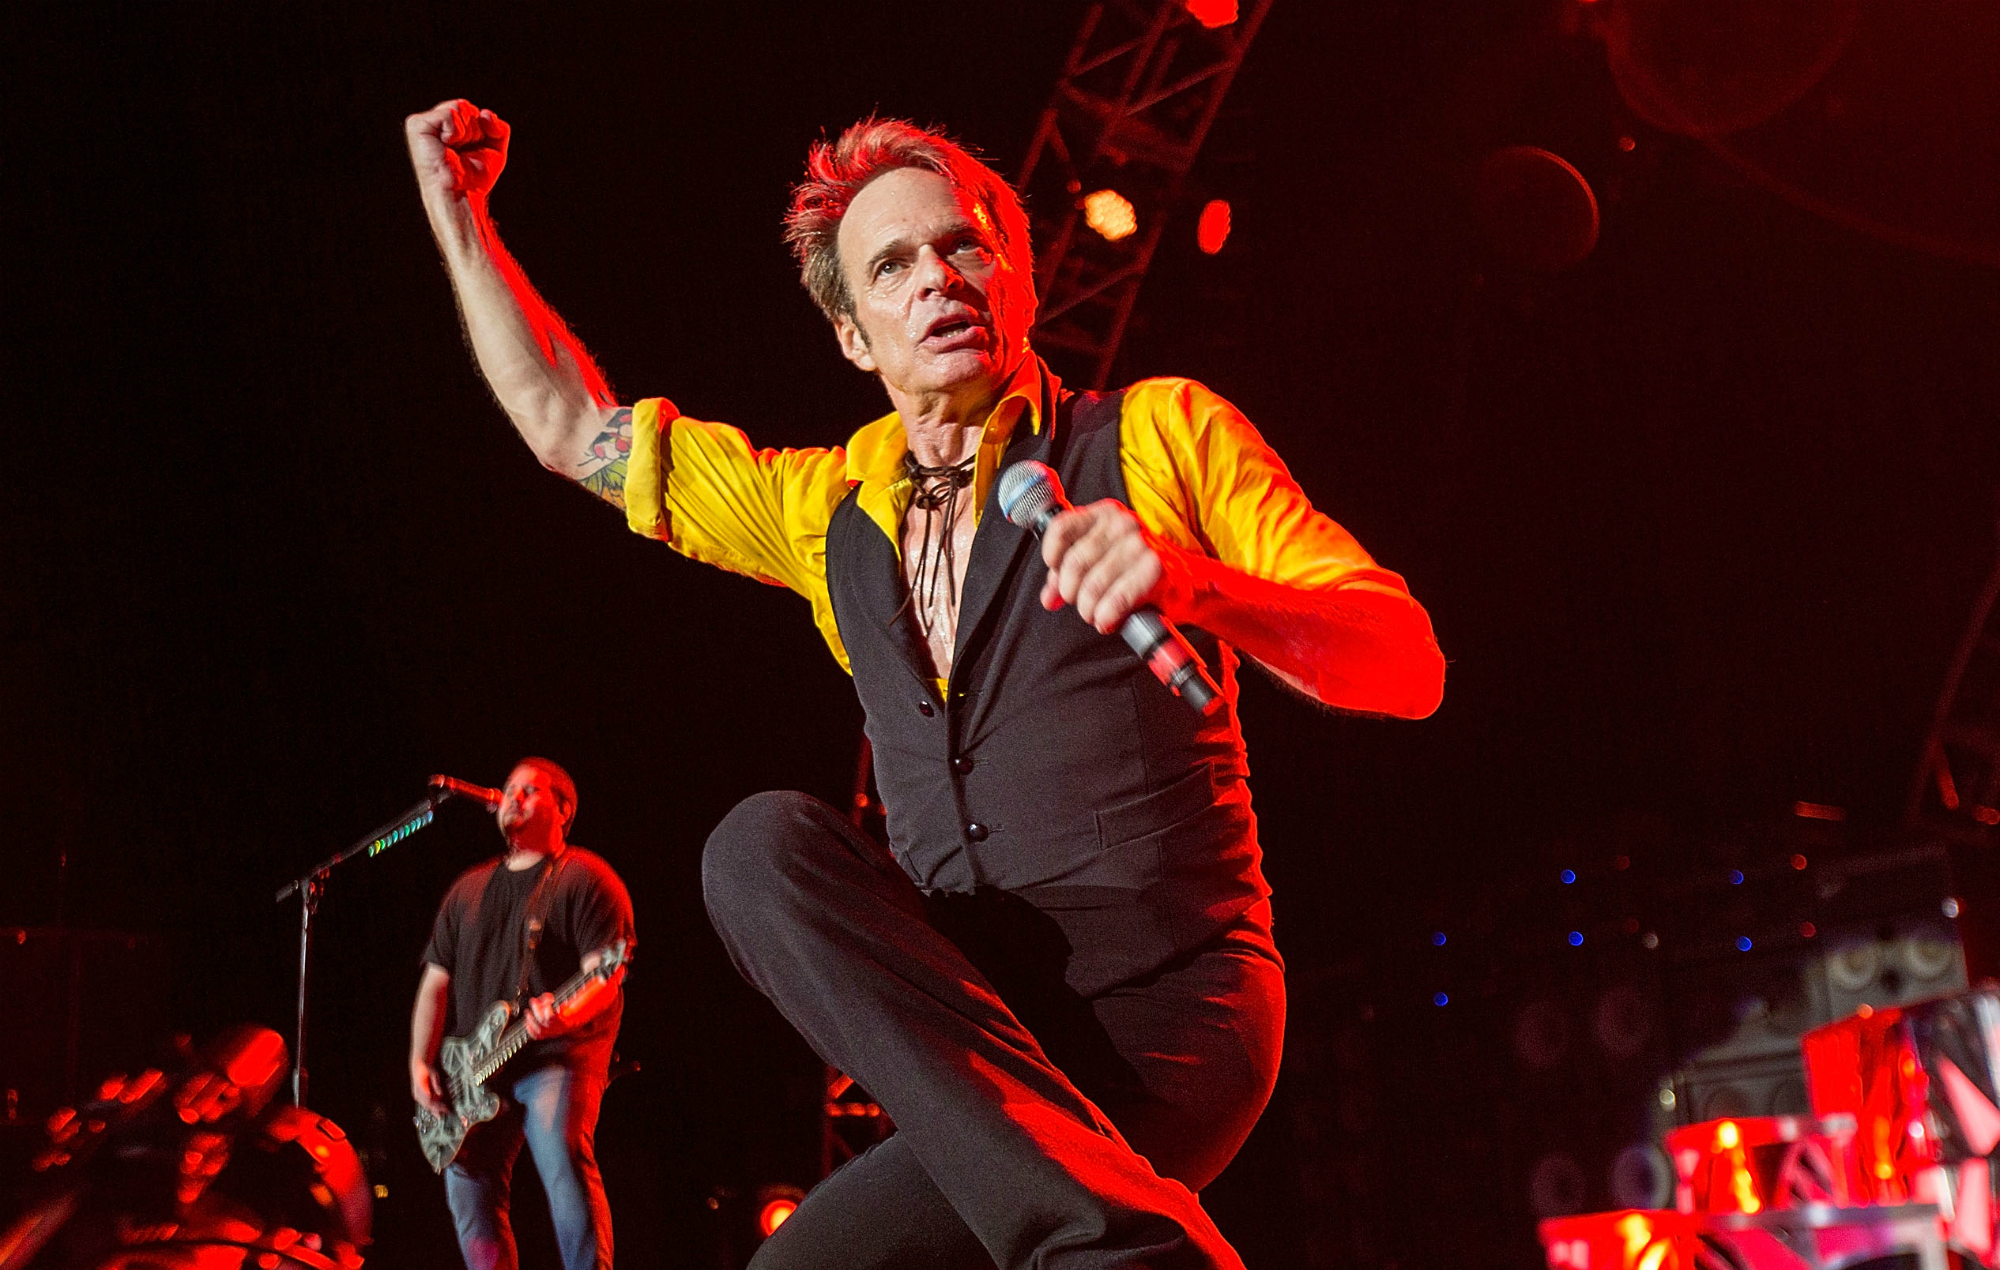 Van Halen Is Finished According To David Lee Roth